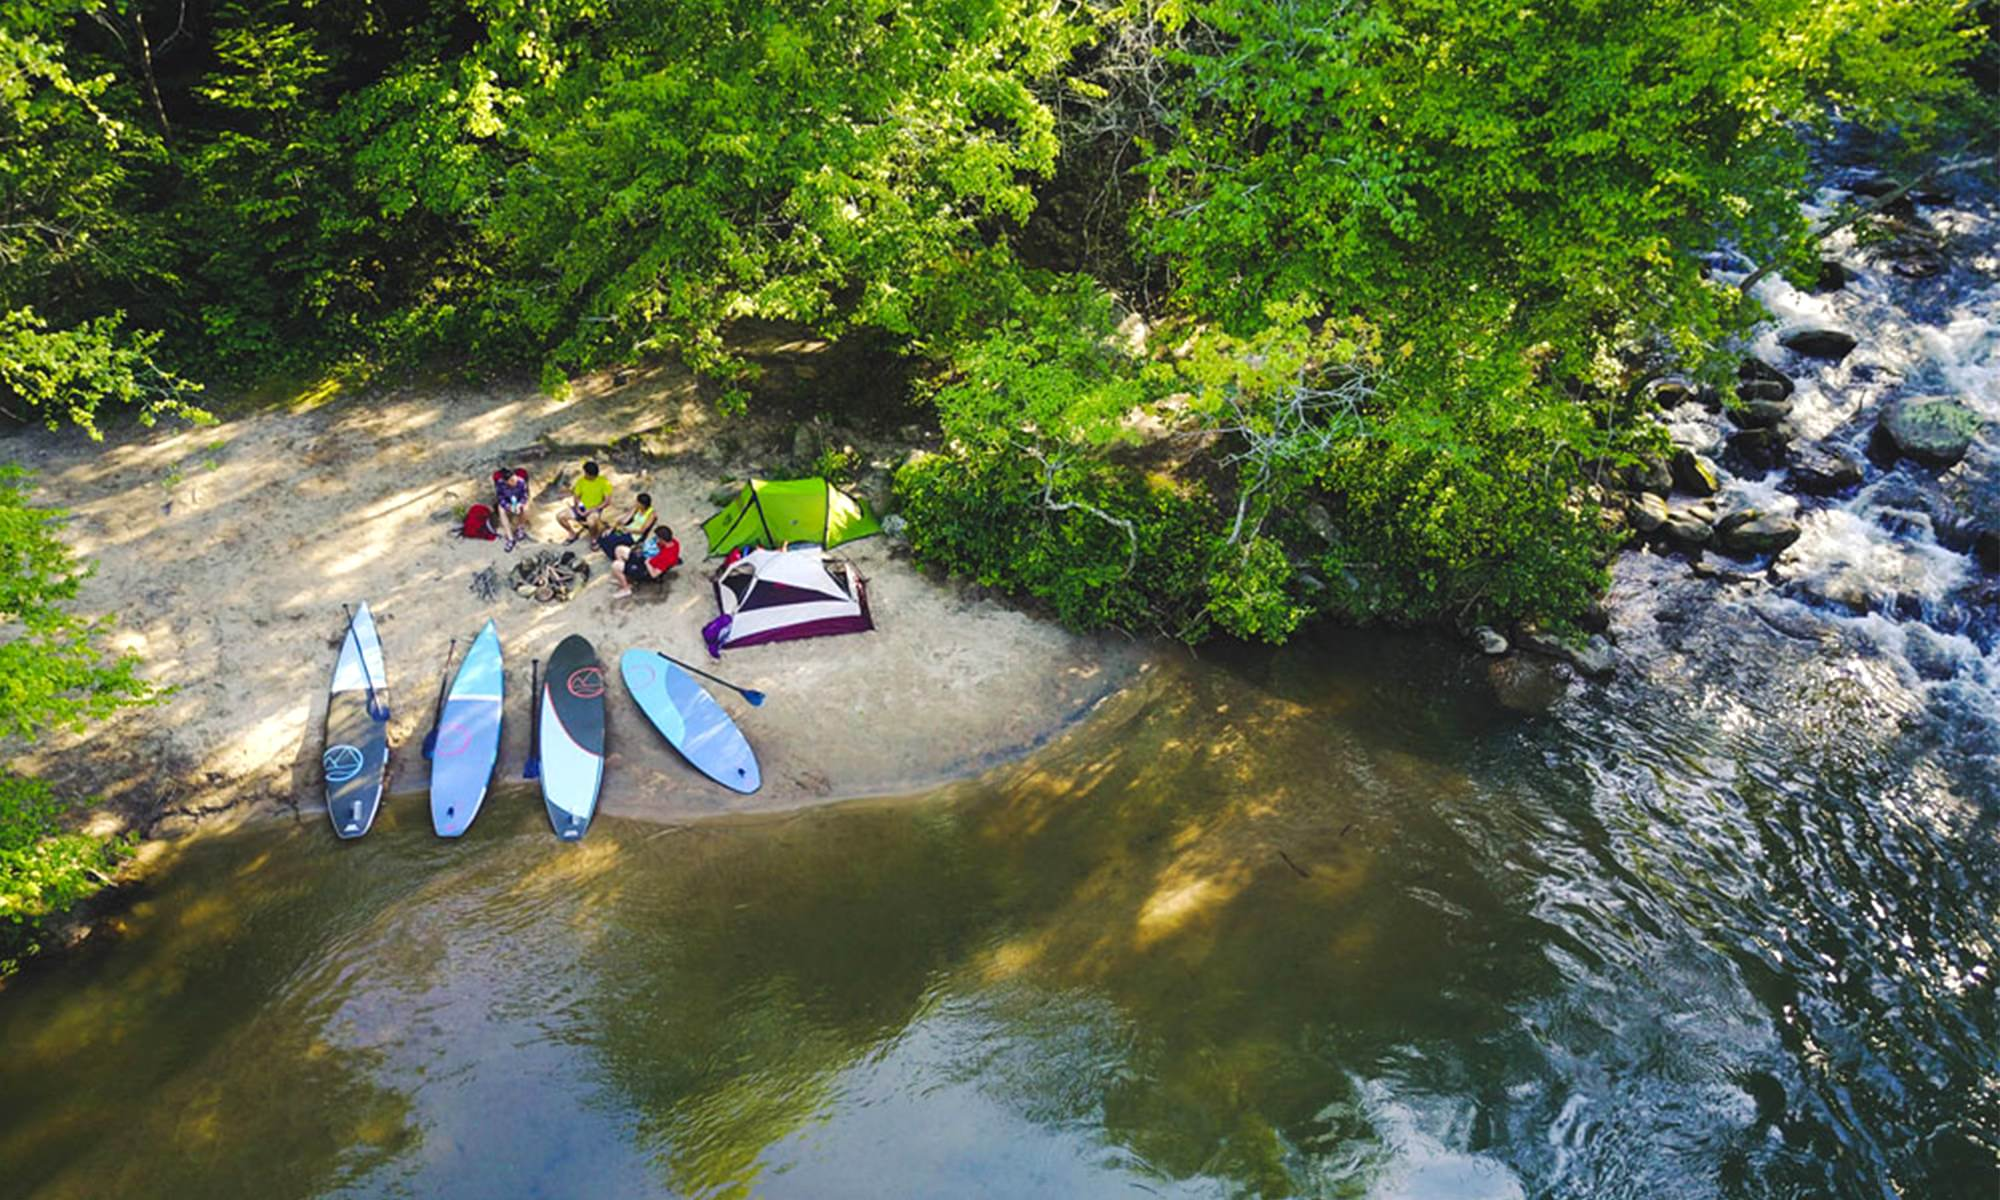 How to Prepare for a SUP Camping Trip